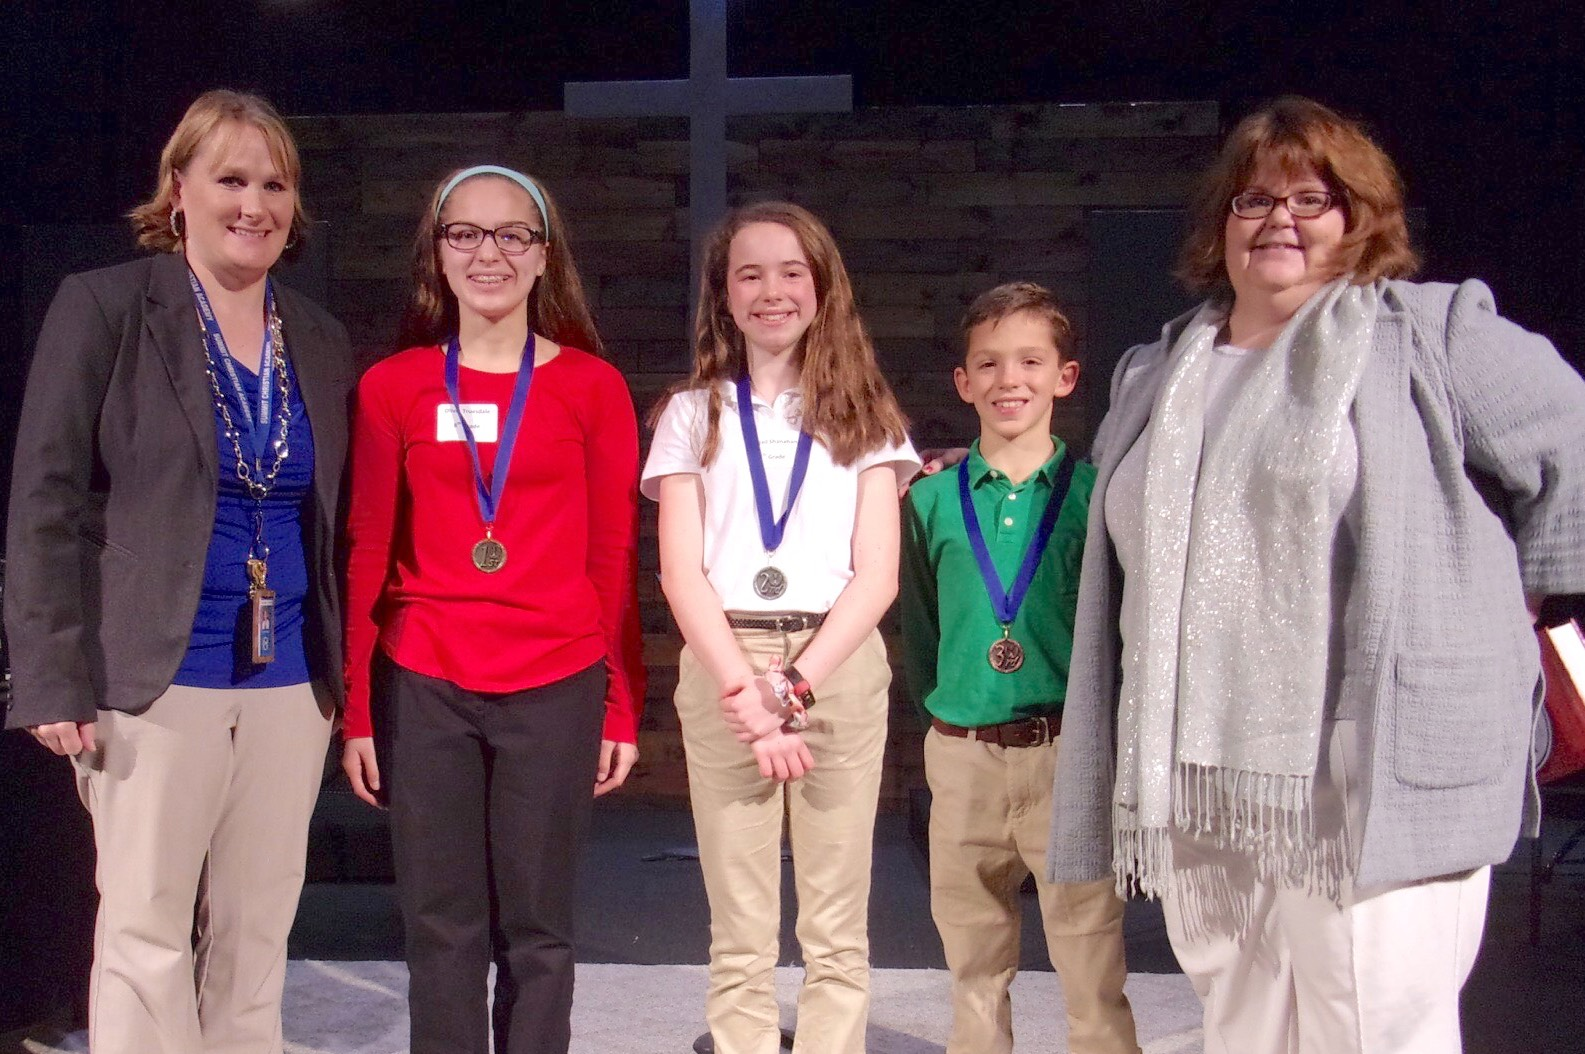 From left to right: SCA Elementary Principal Mrs. Charissa Sanders with Spelling Bee Winner 8th grade student Olivia Truesdale, second place winner sixth grade student Abigail Shanahan, third place winner third grade student Leo Butler, and SCA Academic Dean Mrs. Kimberlee Gill. These students will advance to the Association of Christian Schools International (ACSI) district competition on January 16 at Maranatha Christian Academy in Shawnee, KS.